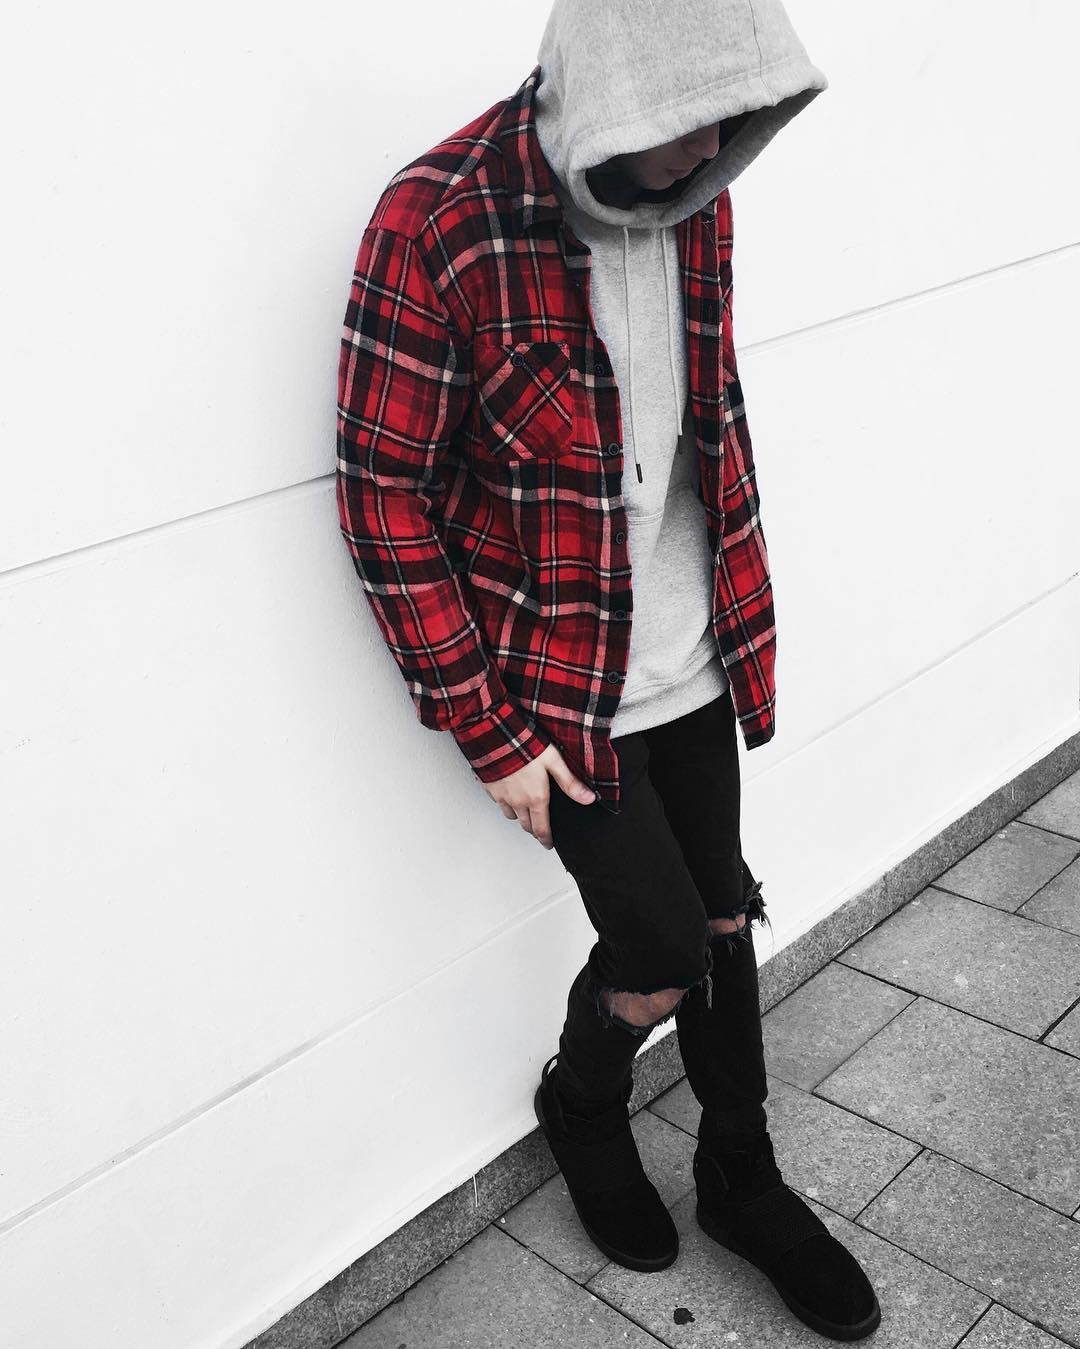 Men's outfits with flannel  Menus and womens fashion clothing apparel  minimal streetwear